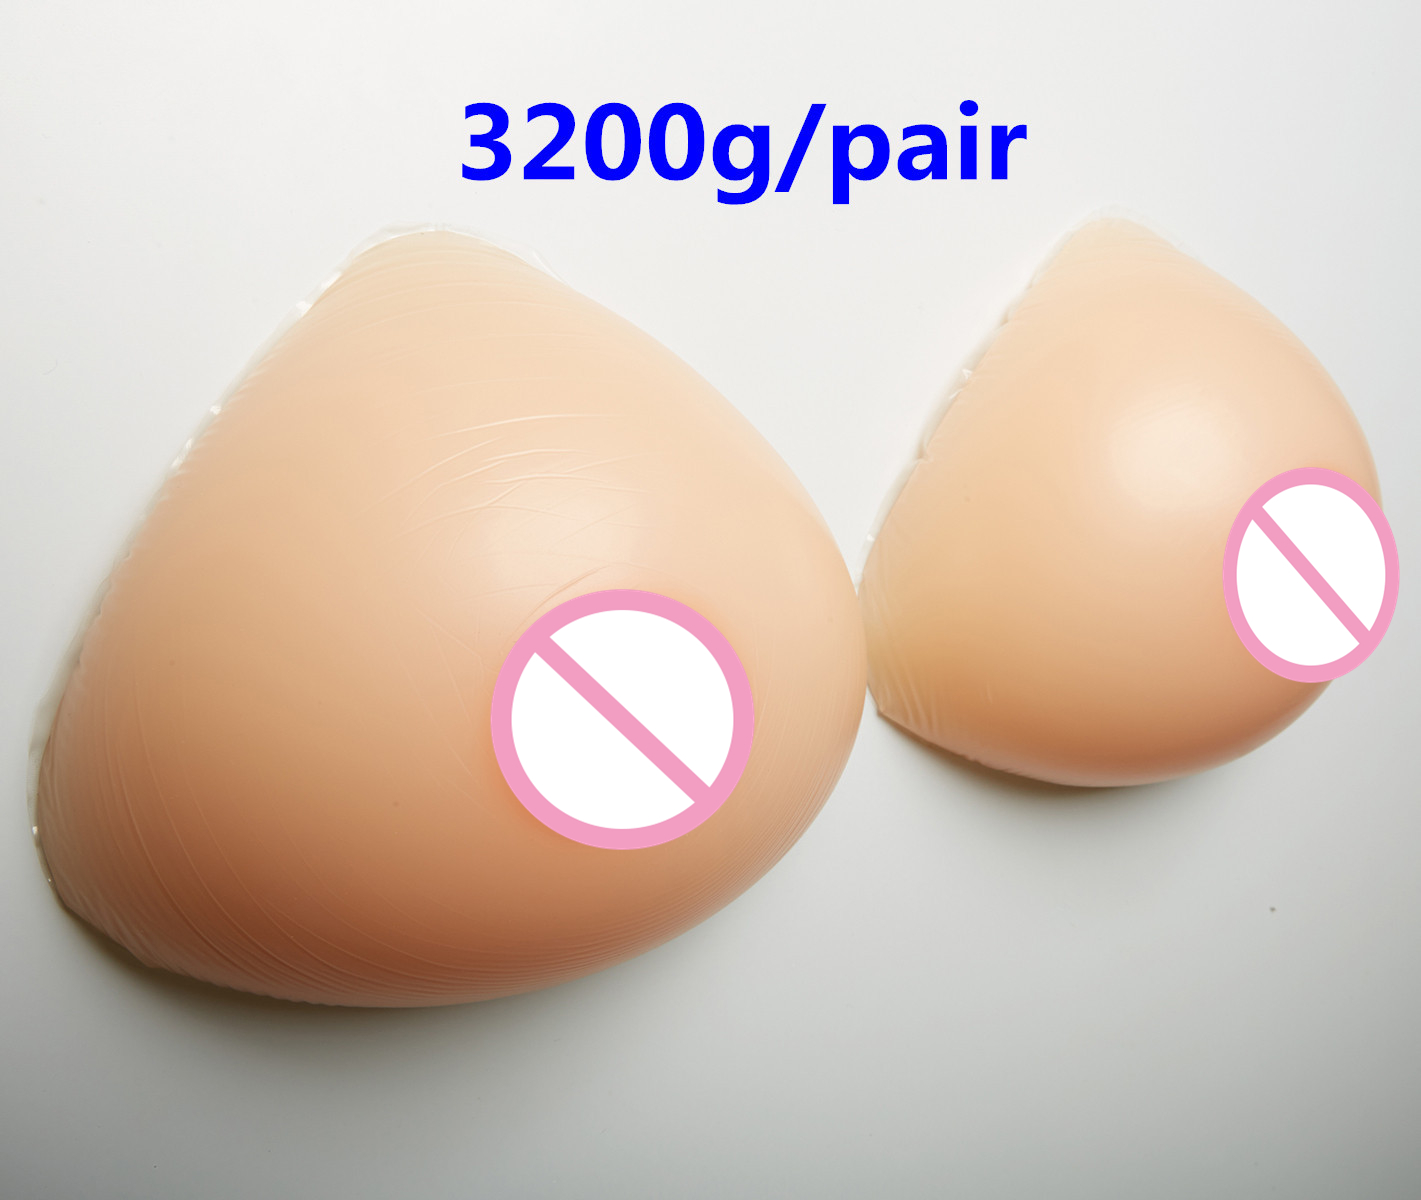 3200g/pair Mastectomy Silicone Breast Forms Transvestite Realistic Breast Prosthesis Silicone Artificial Breast Shemale Boobs realistic silicone breast forms prosthesis mastectomy for surgery woman false fake boobs